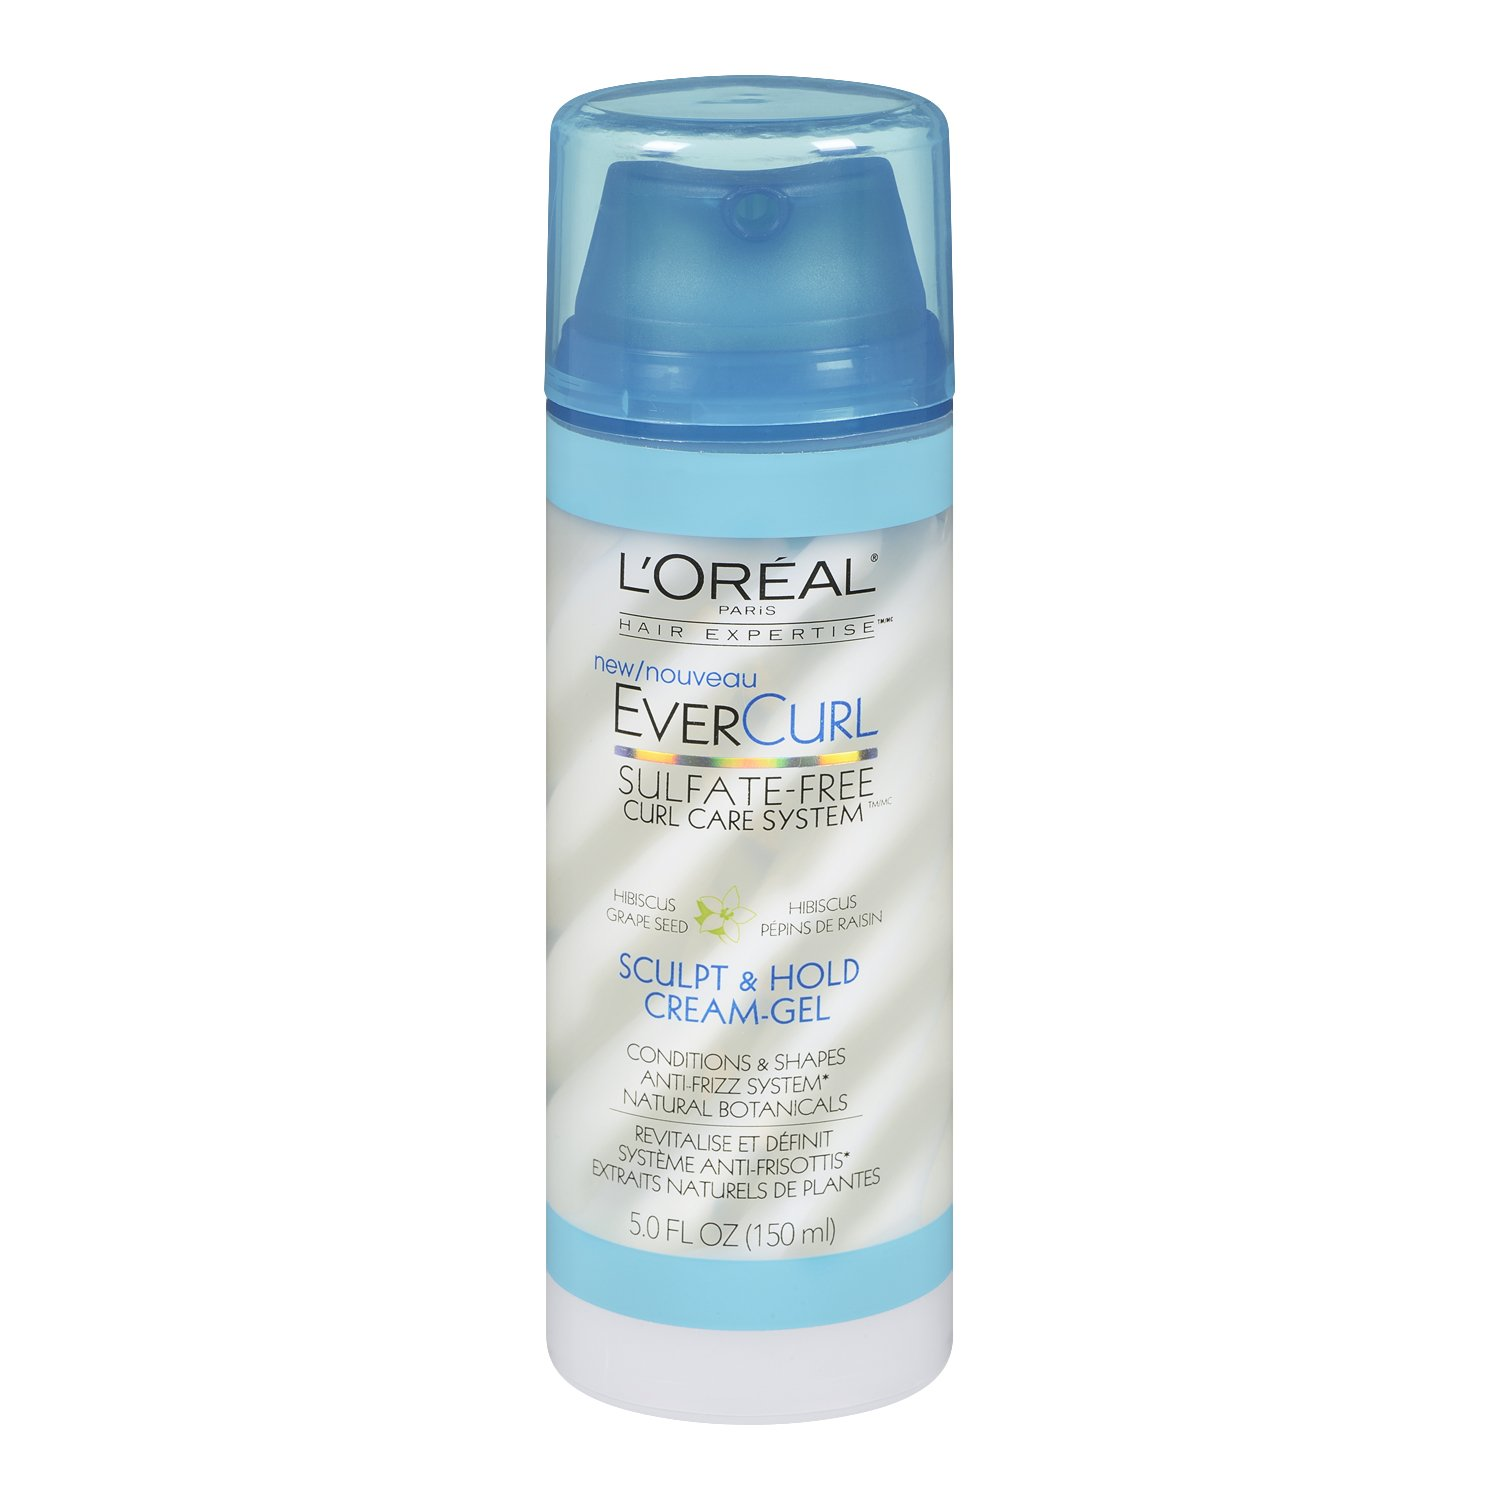 L'Oreal Paris EverCurl Sculpt and Hold Cream Gel, 5.0 Fluid Ounce